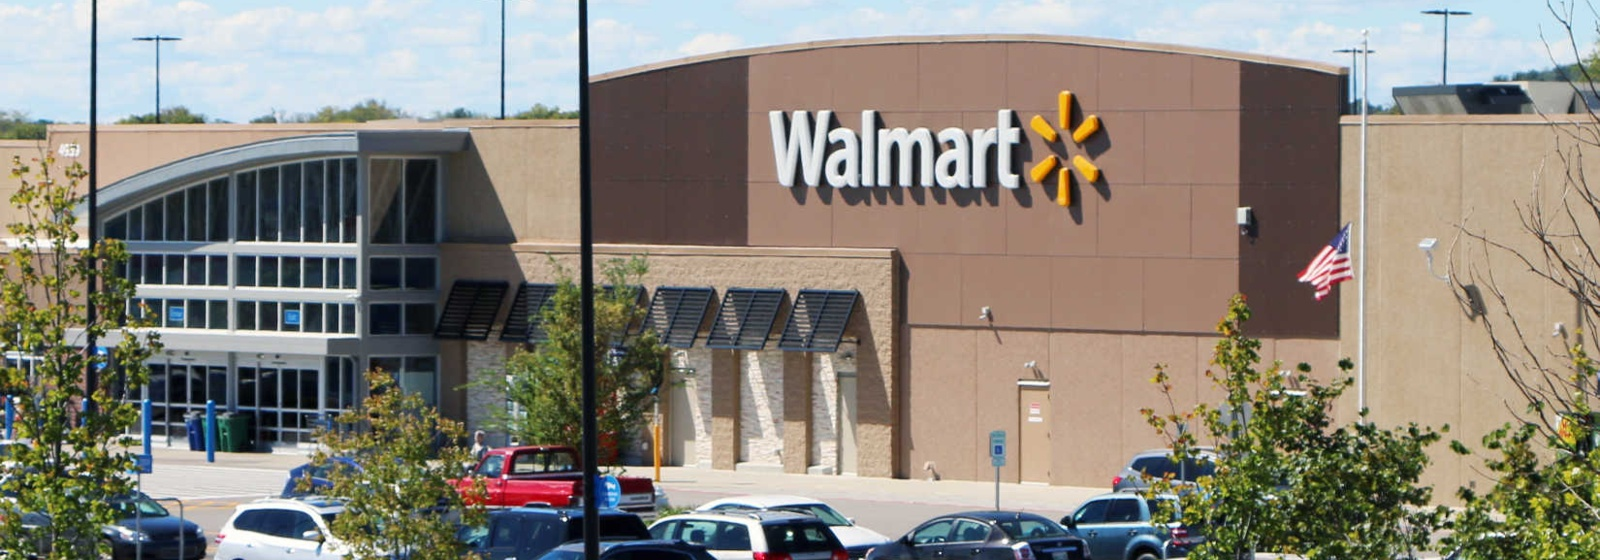 Church-Goers Worship in Wal-Mart as Churches Continue to Be Shuttered